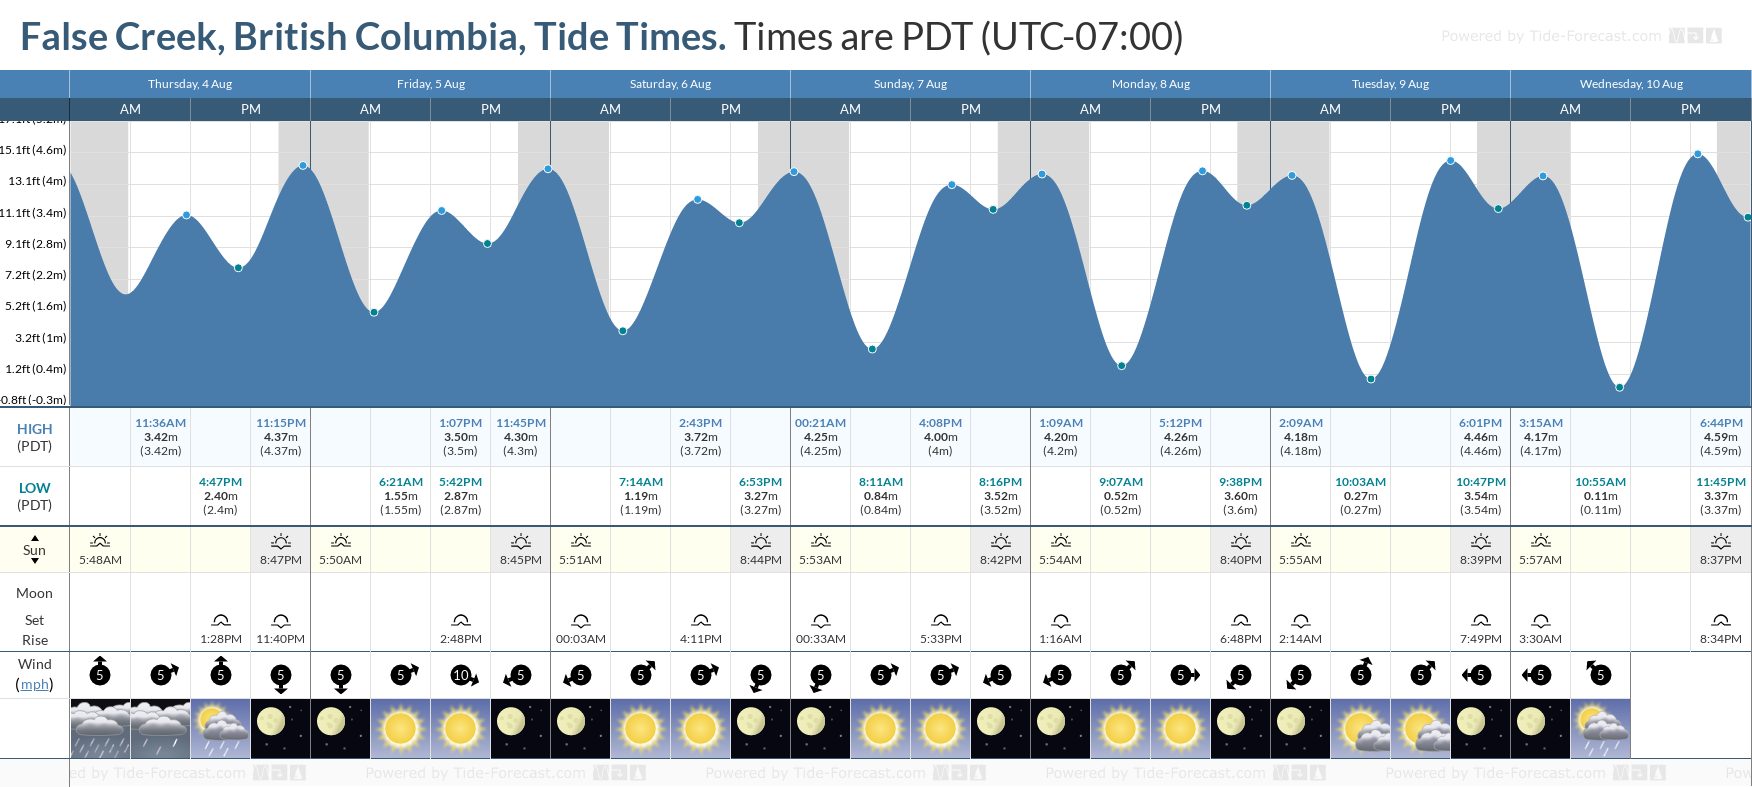 False Creek, British Columbia Tide Chart including high and low tide tide times for the next 7 days